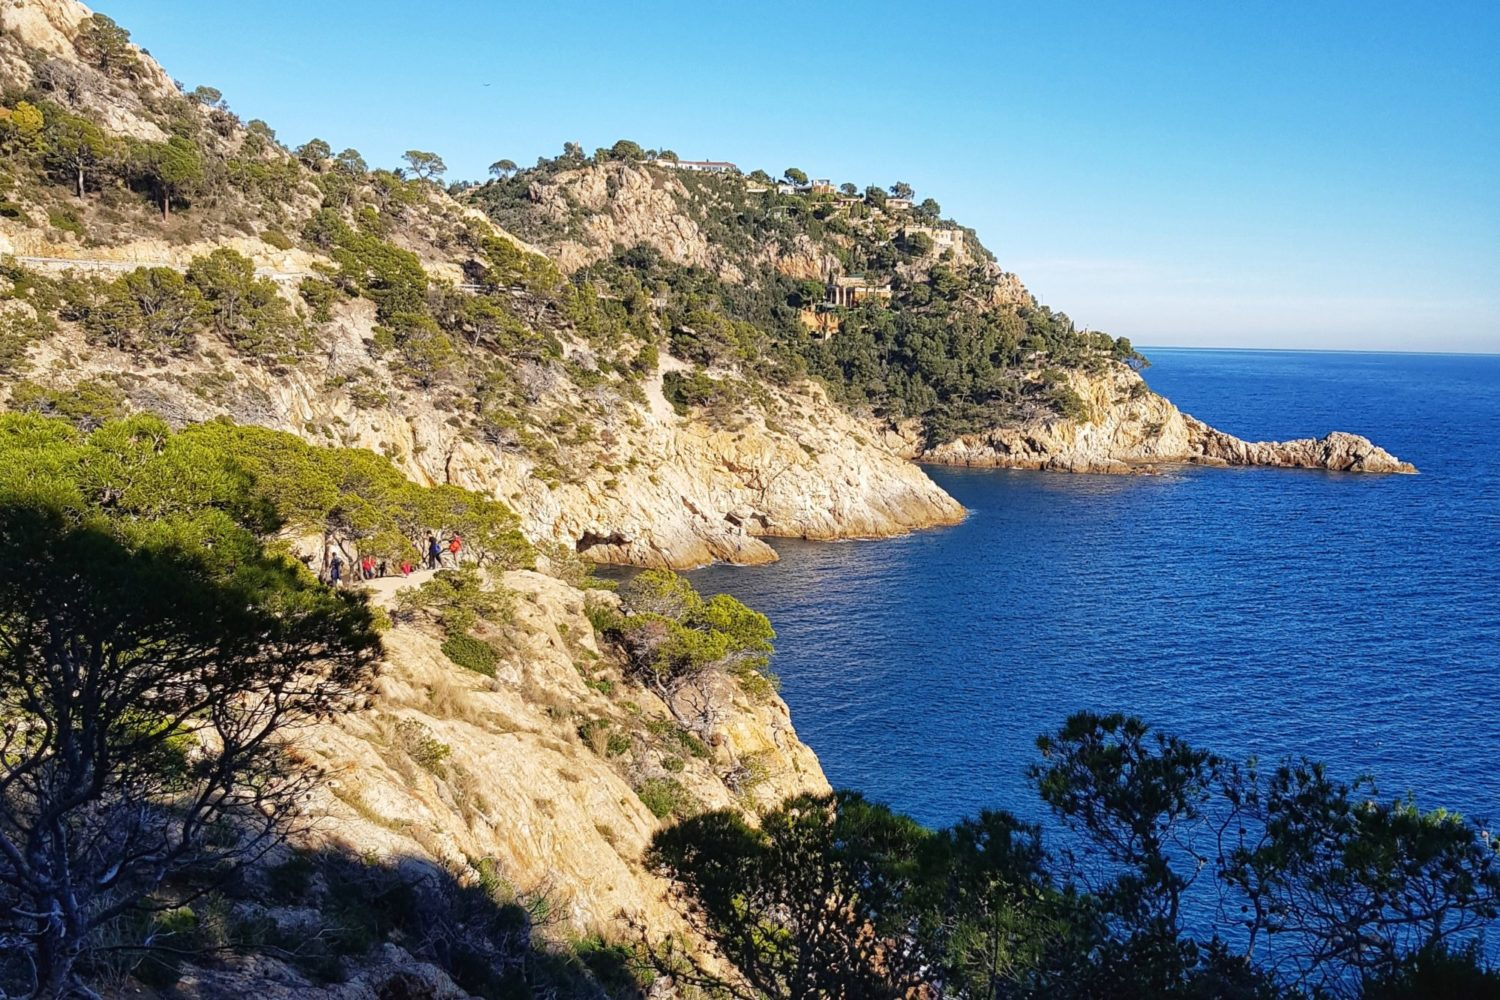 Coastal walk with magical views in Tossa de Mar. Active holidays in the Costa Brava.